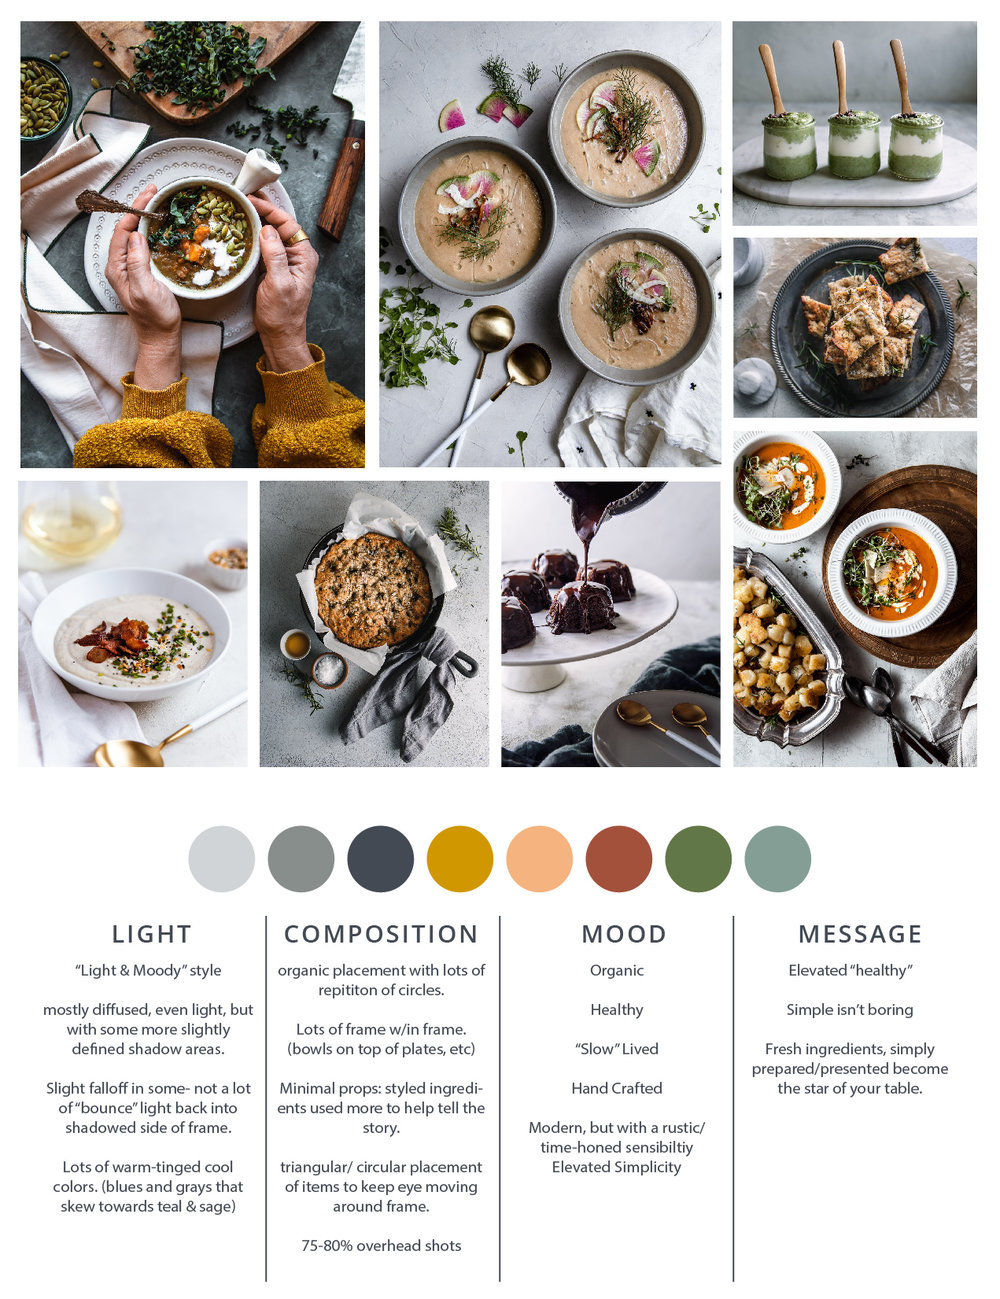 If you want to create a signature visual voice/ aesthetic for your food or wellness brand, start by creating a guide or moodboard you can refer to. It's especially helpful for creating a branded look on Instagram and can inform your colors, lighting, mood and overall style. These are all images taken by me- Sarah Ehlinger- for Brand Spanking you, and I refer to this to make sure I'm continuing to create images in a cohesive style